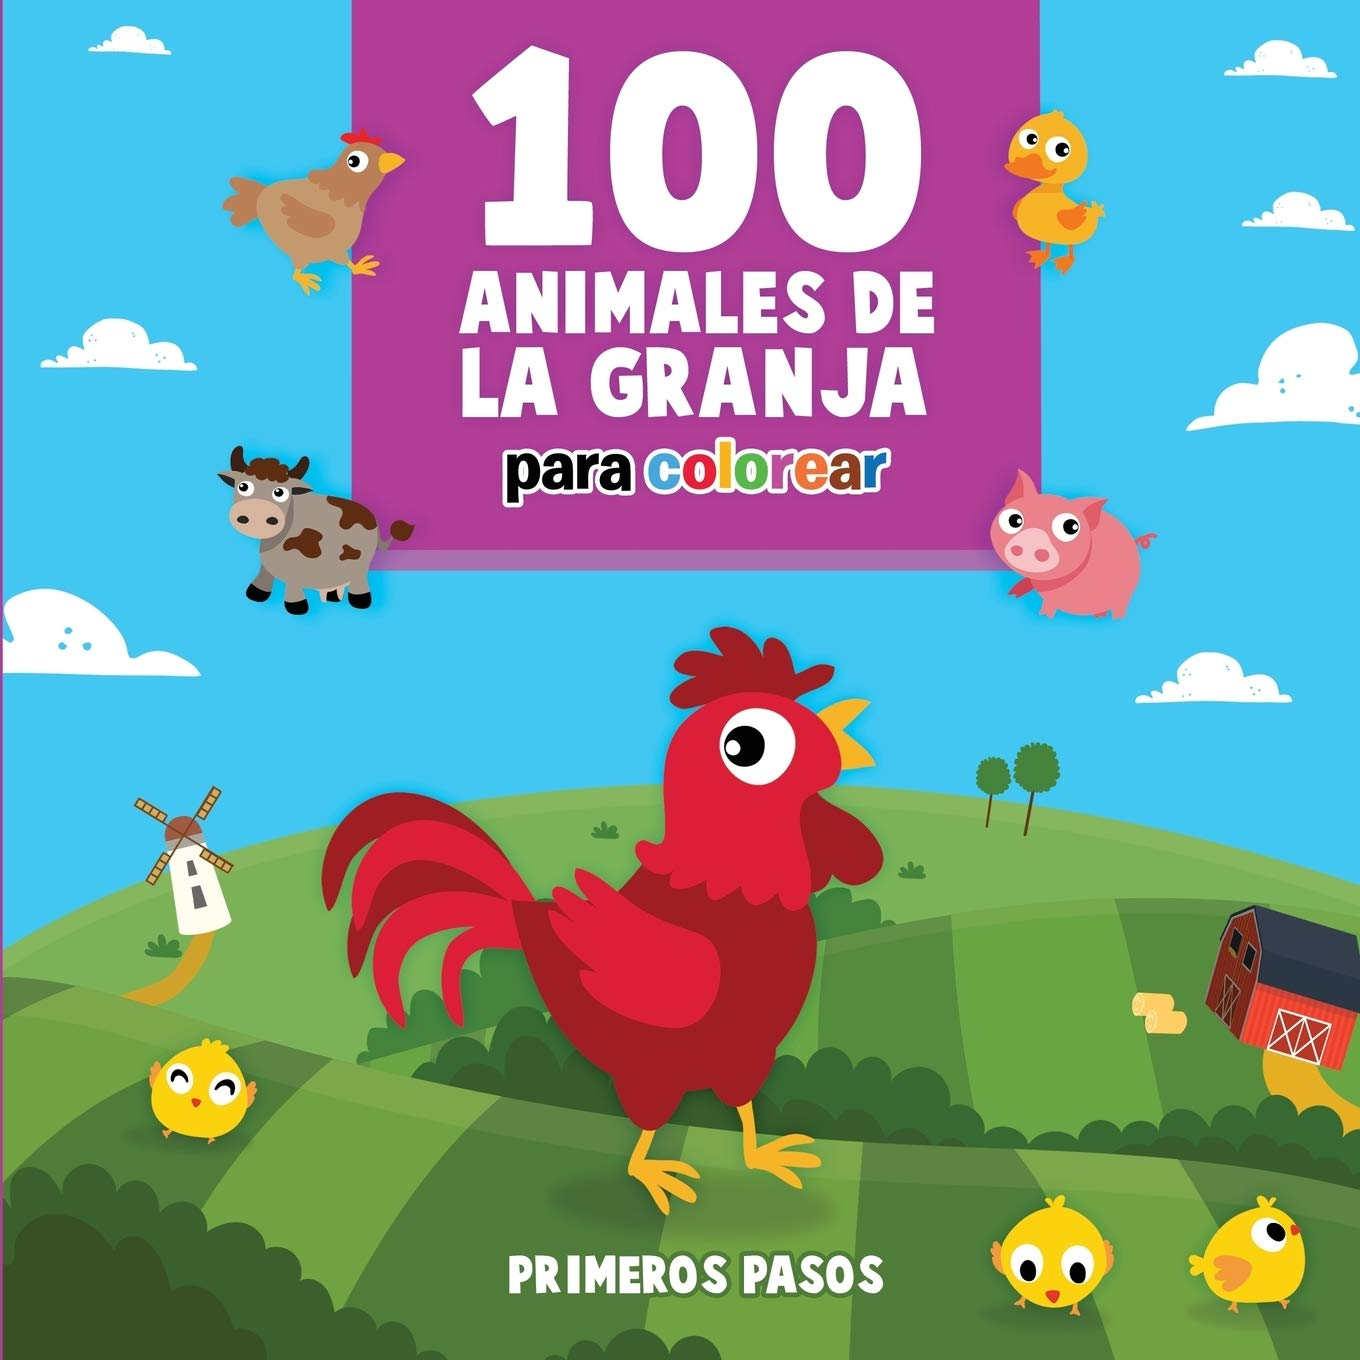 100 Animales De La Granja Para Colorear Libro Infantil Para Pintar 4 Primeros Pasos Amazon Es Pasos Primeros Libros The series is created and produced by guillermo del bosque for televisa. 100 animales de la granja para colorear